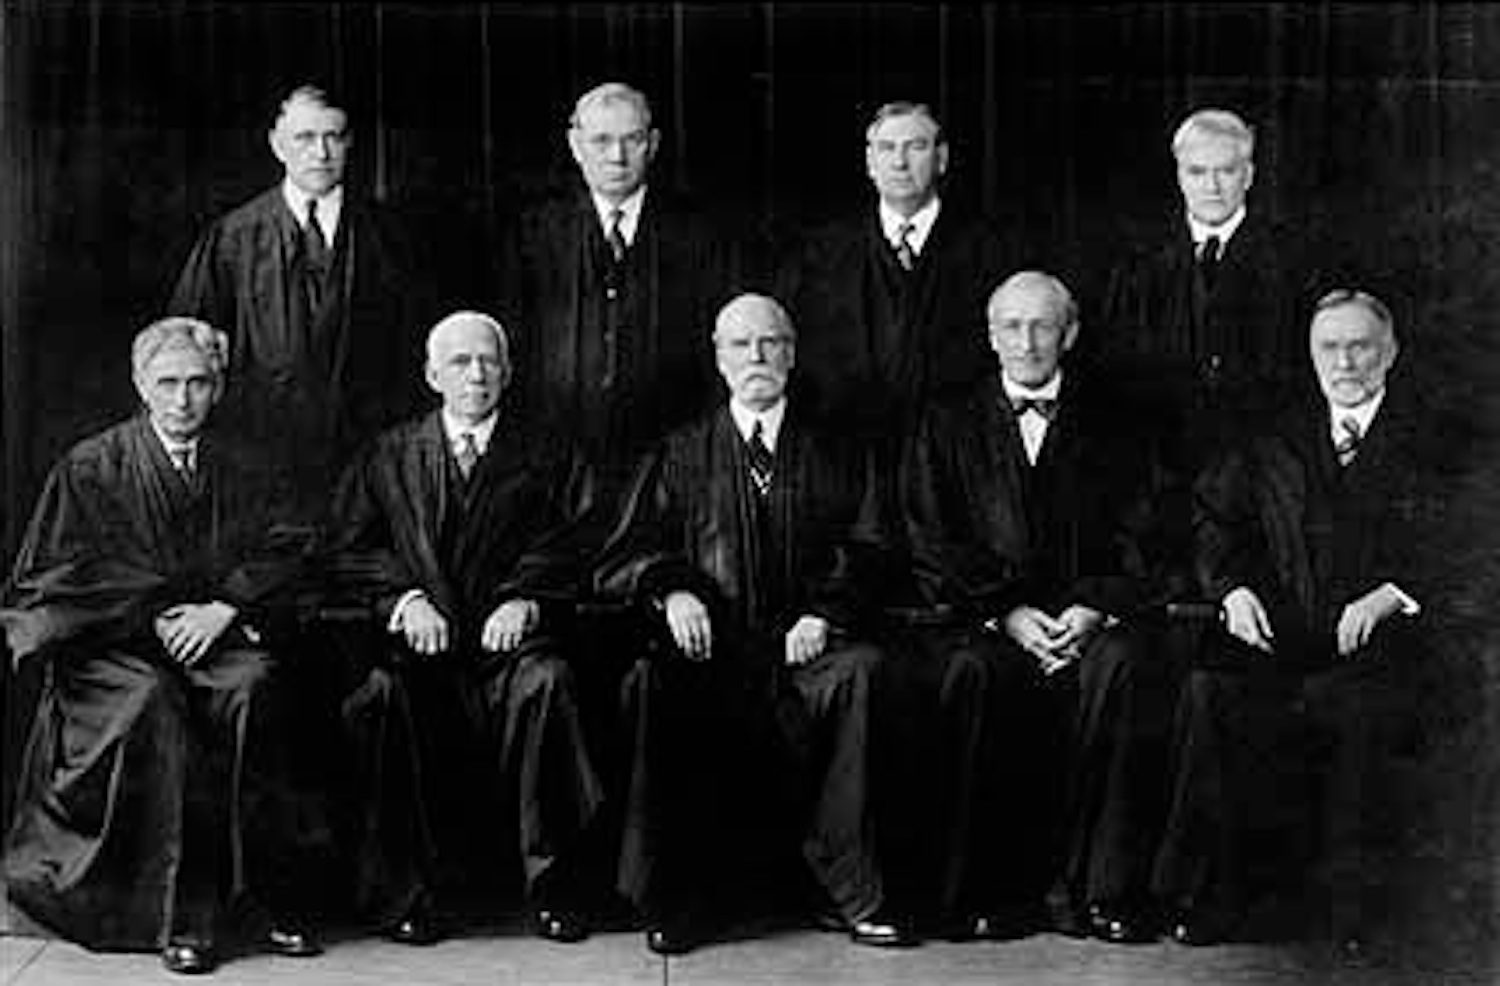 February-5-1937-President-Franklin-Roosevelt-Proposes-to-'Pack'-the-Supreme-Court